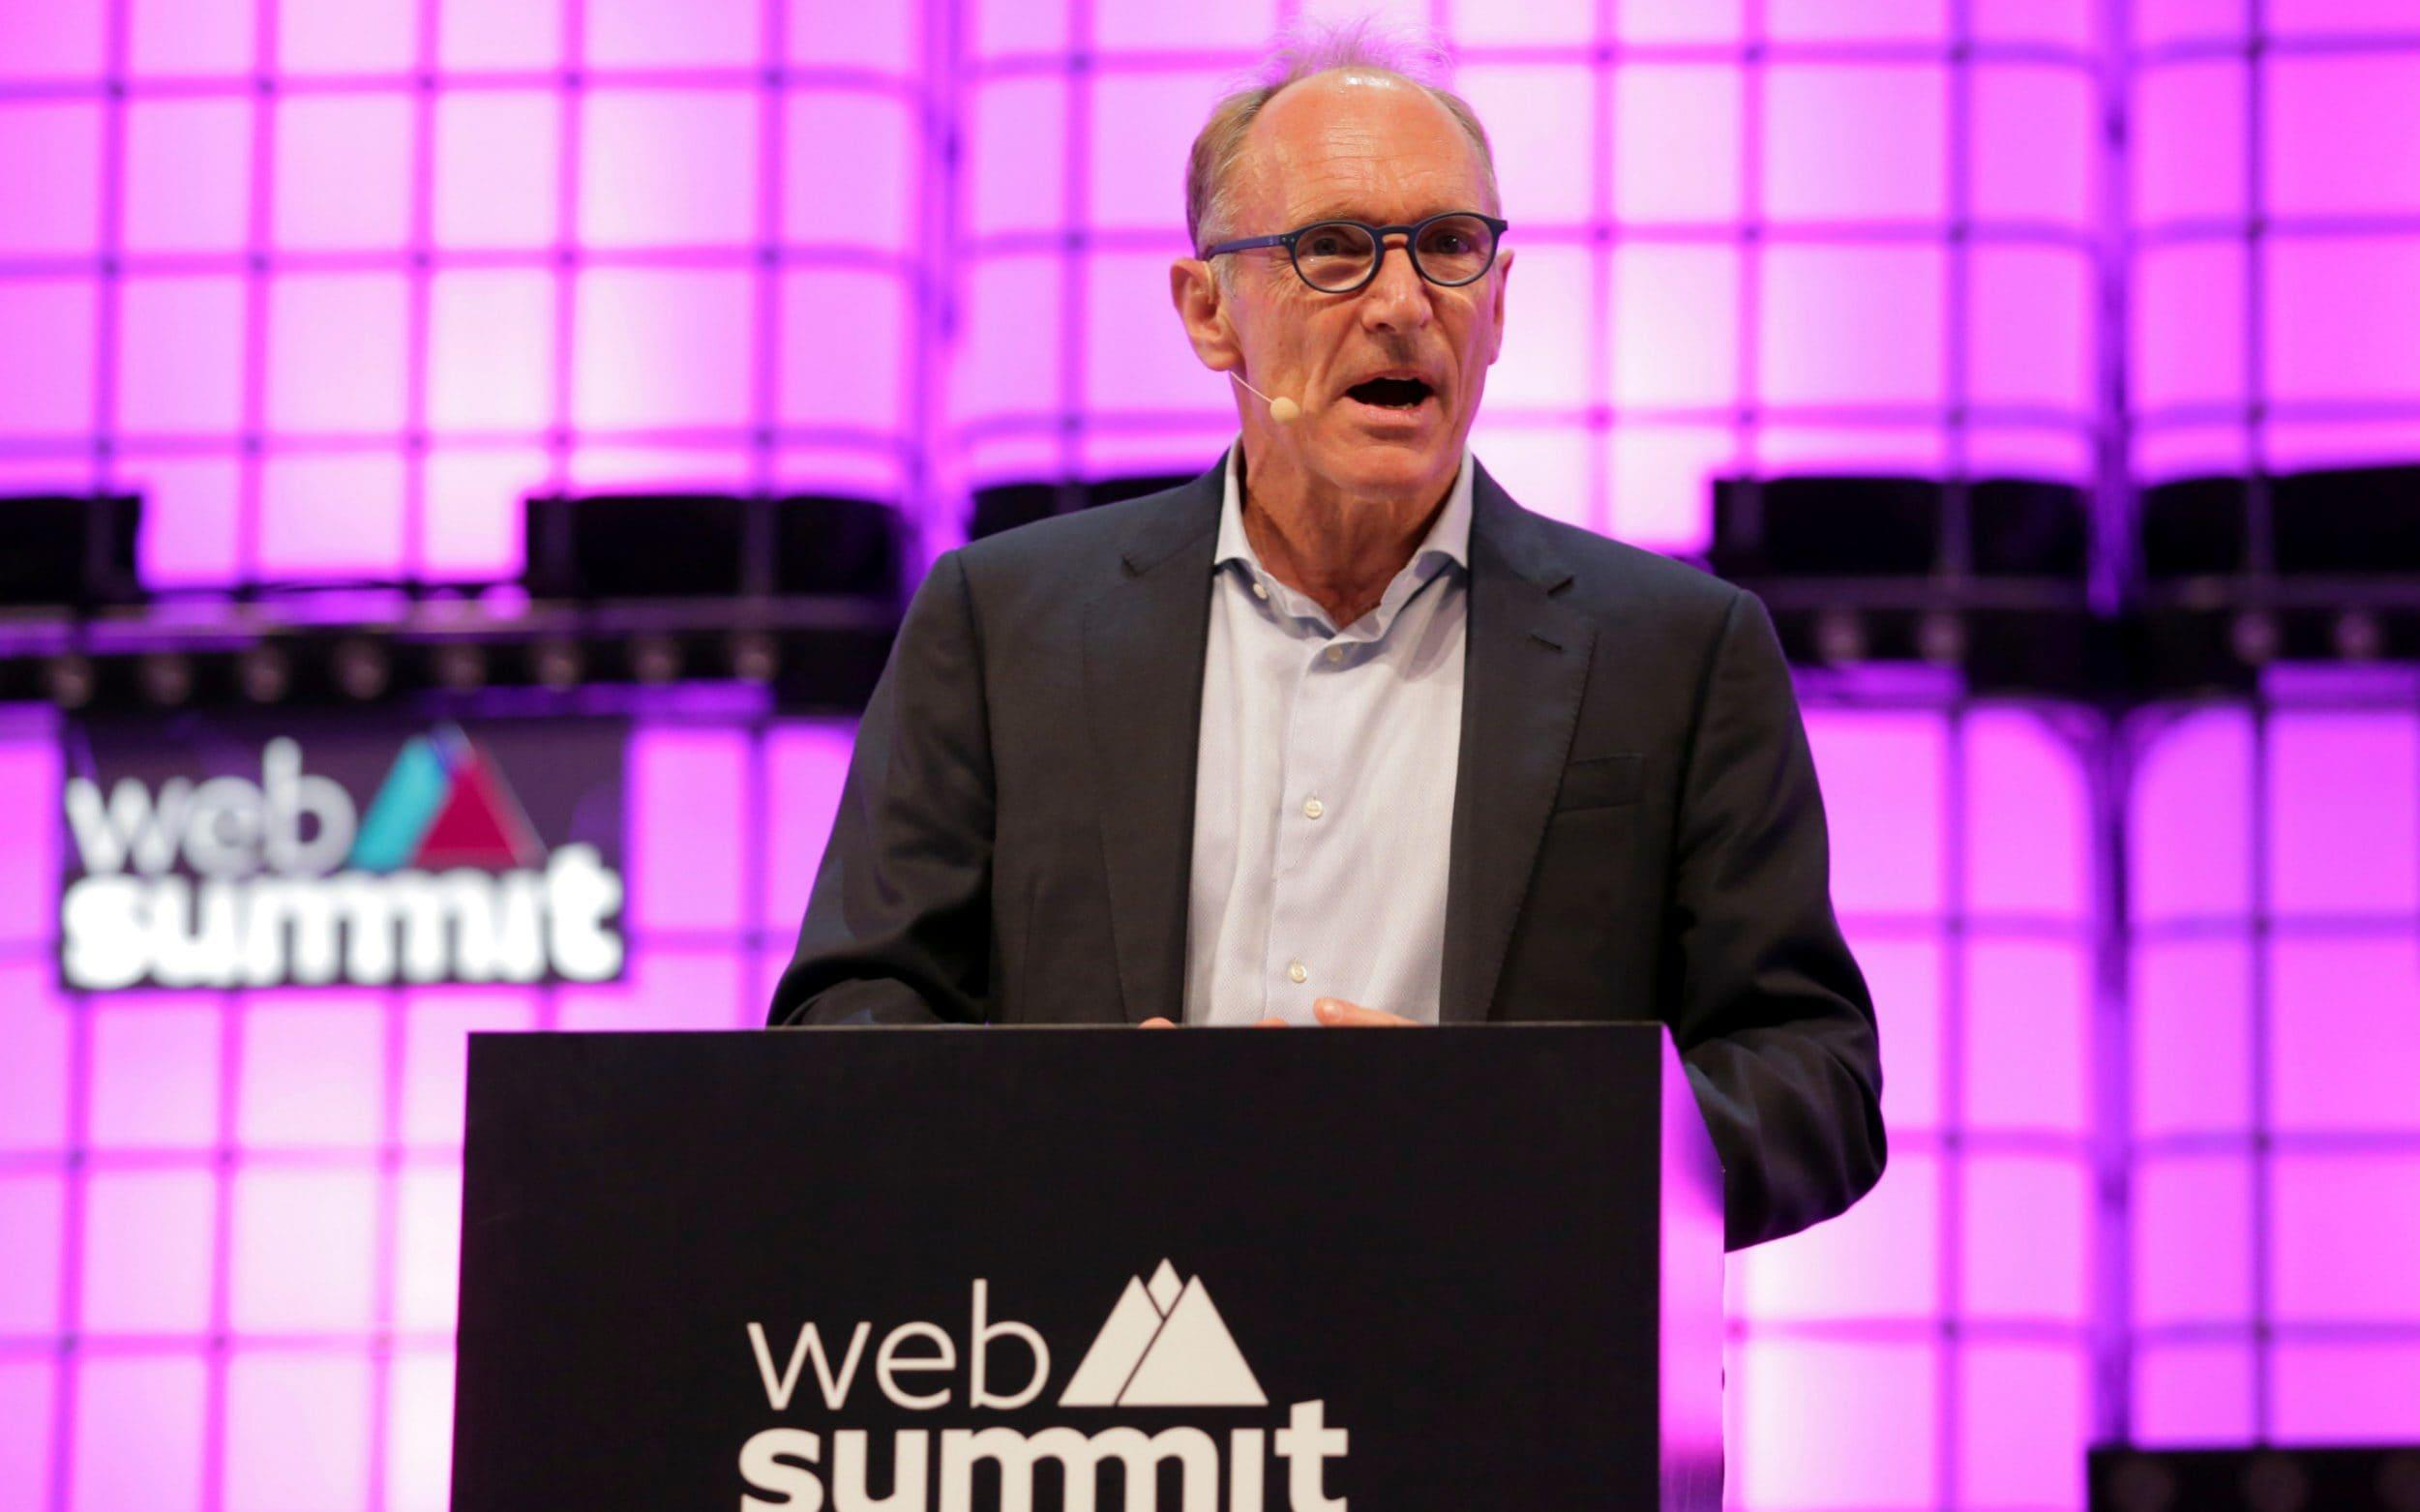 The Man Who Created the World Wide Web Needs You to Help Fix it